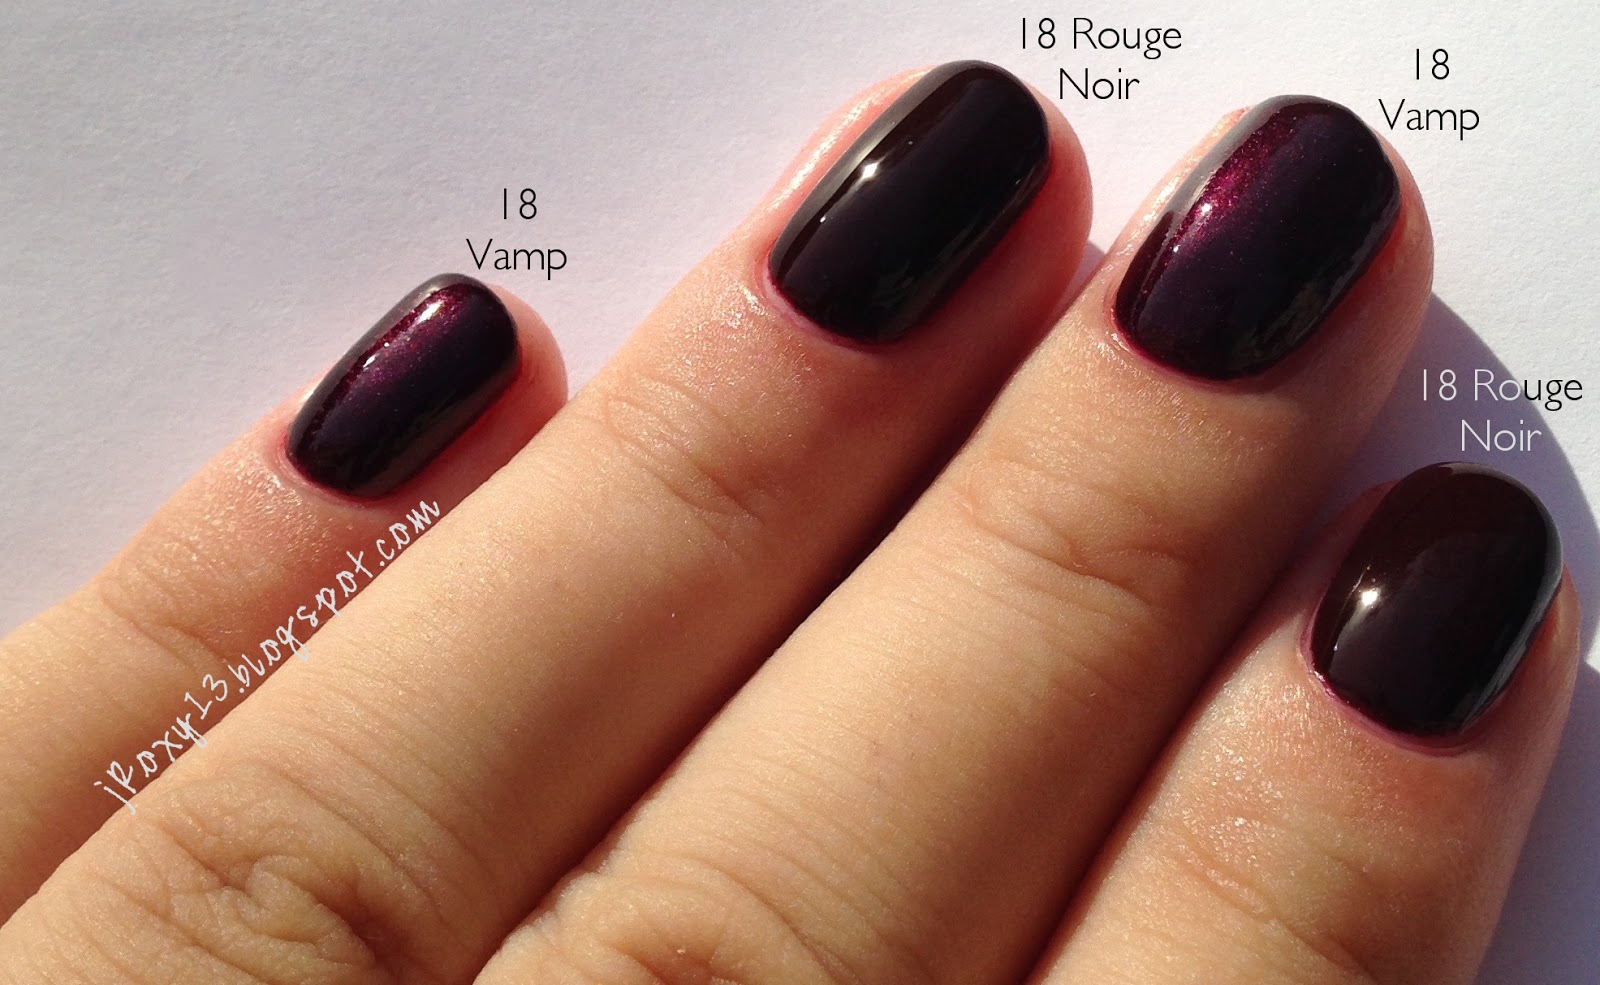 chanel in 18 rouge noir 18 vamp 757 rose fusion and le top coat lam rouge noir swatches. Black Bedroom Furniture Sets. Home Design Ideas